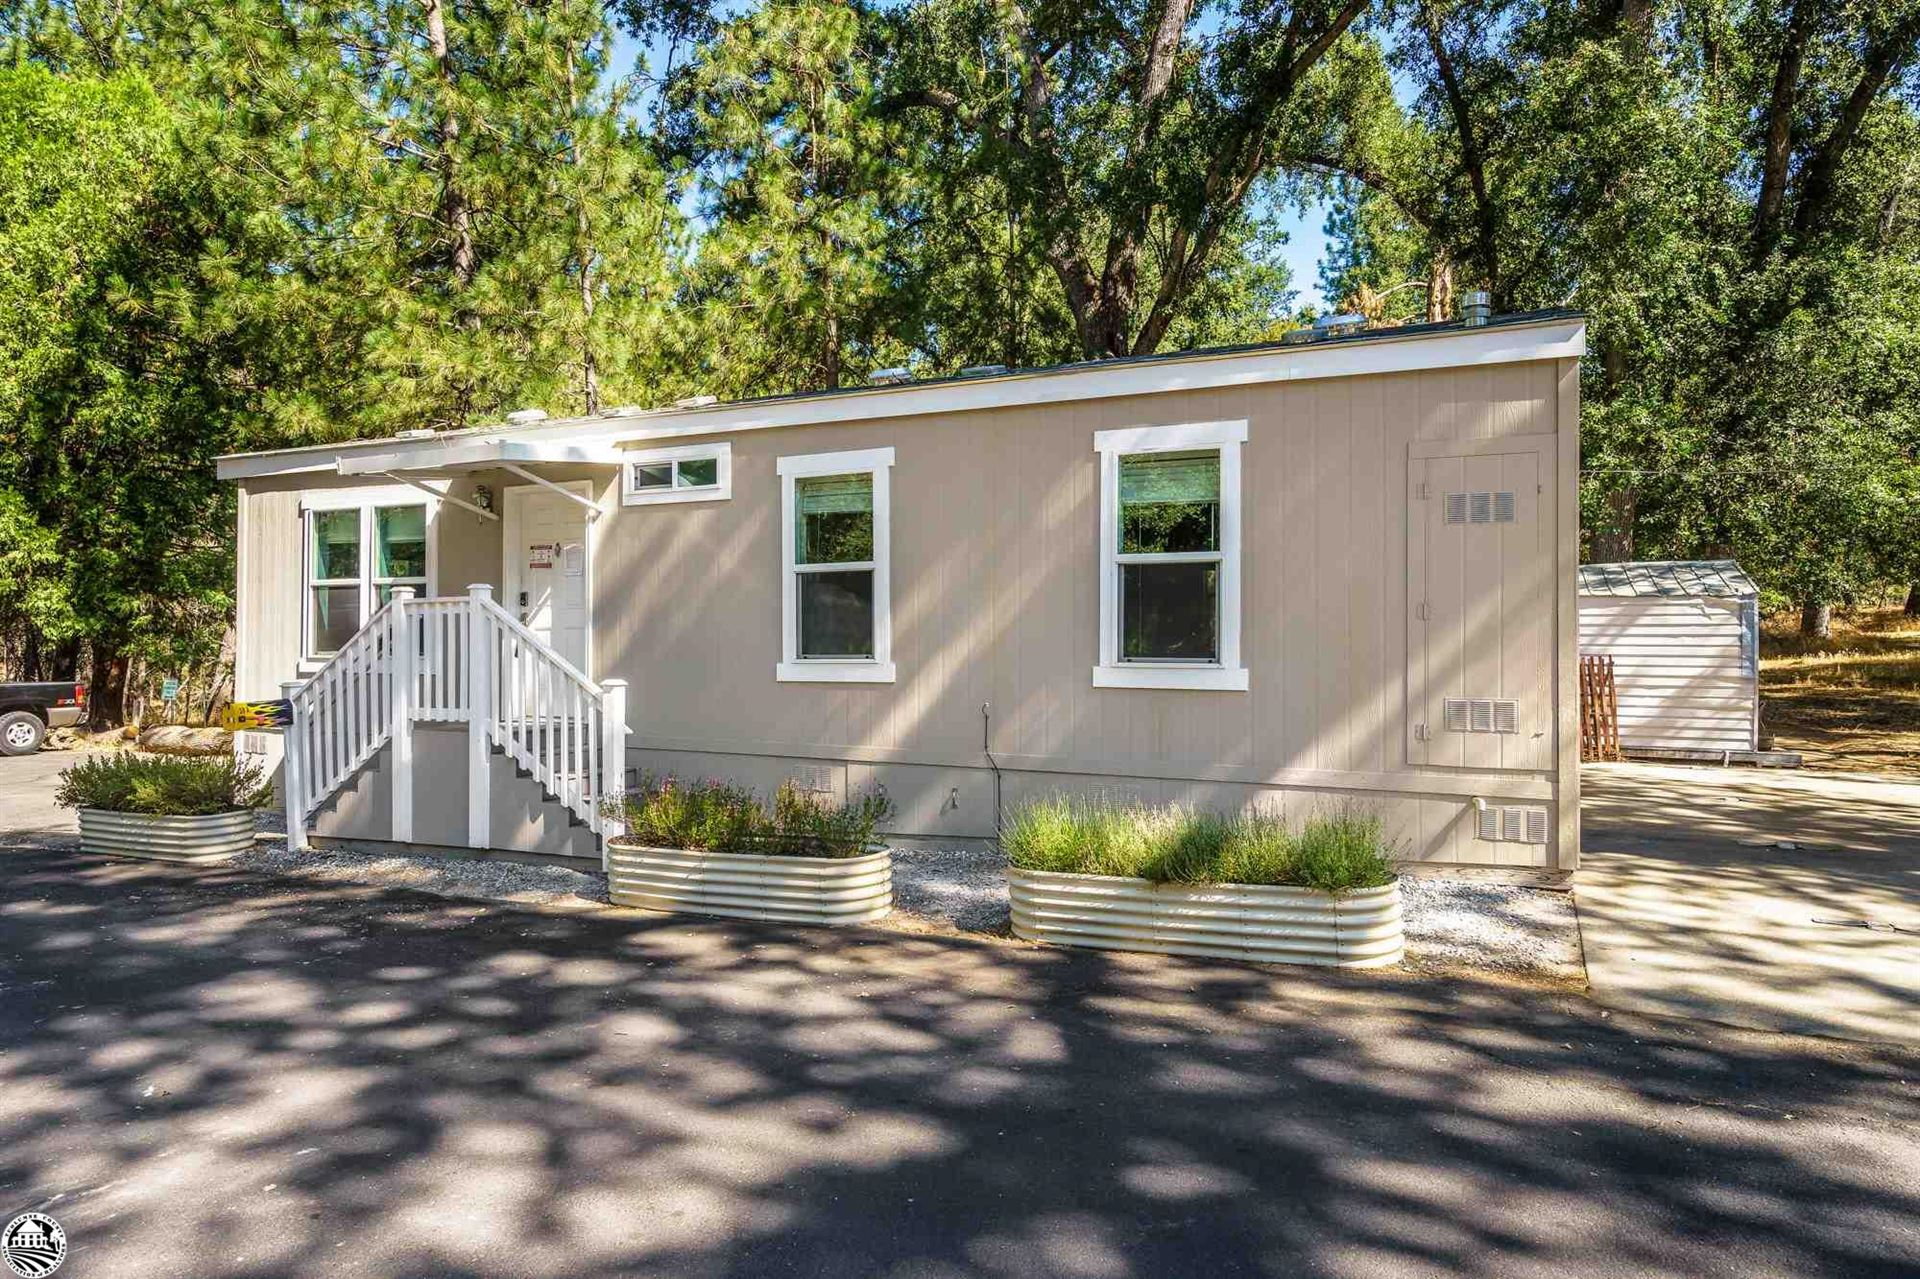 21850 Bellview Dr. Space 39A Drive Drive, Sonora, CA 95370 - MLS#: 20201209